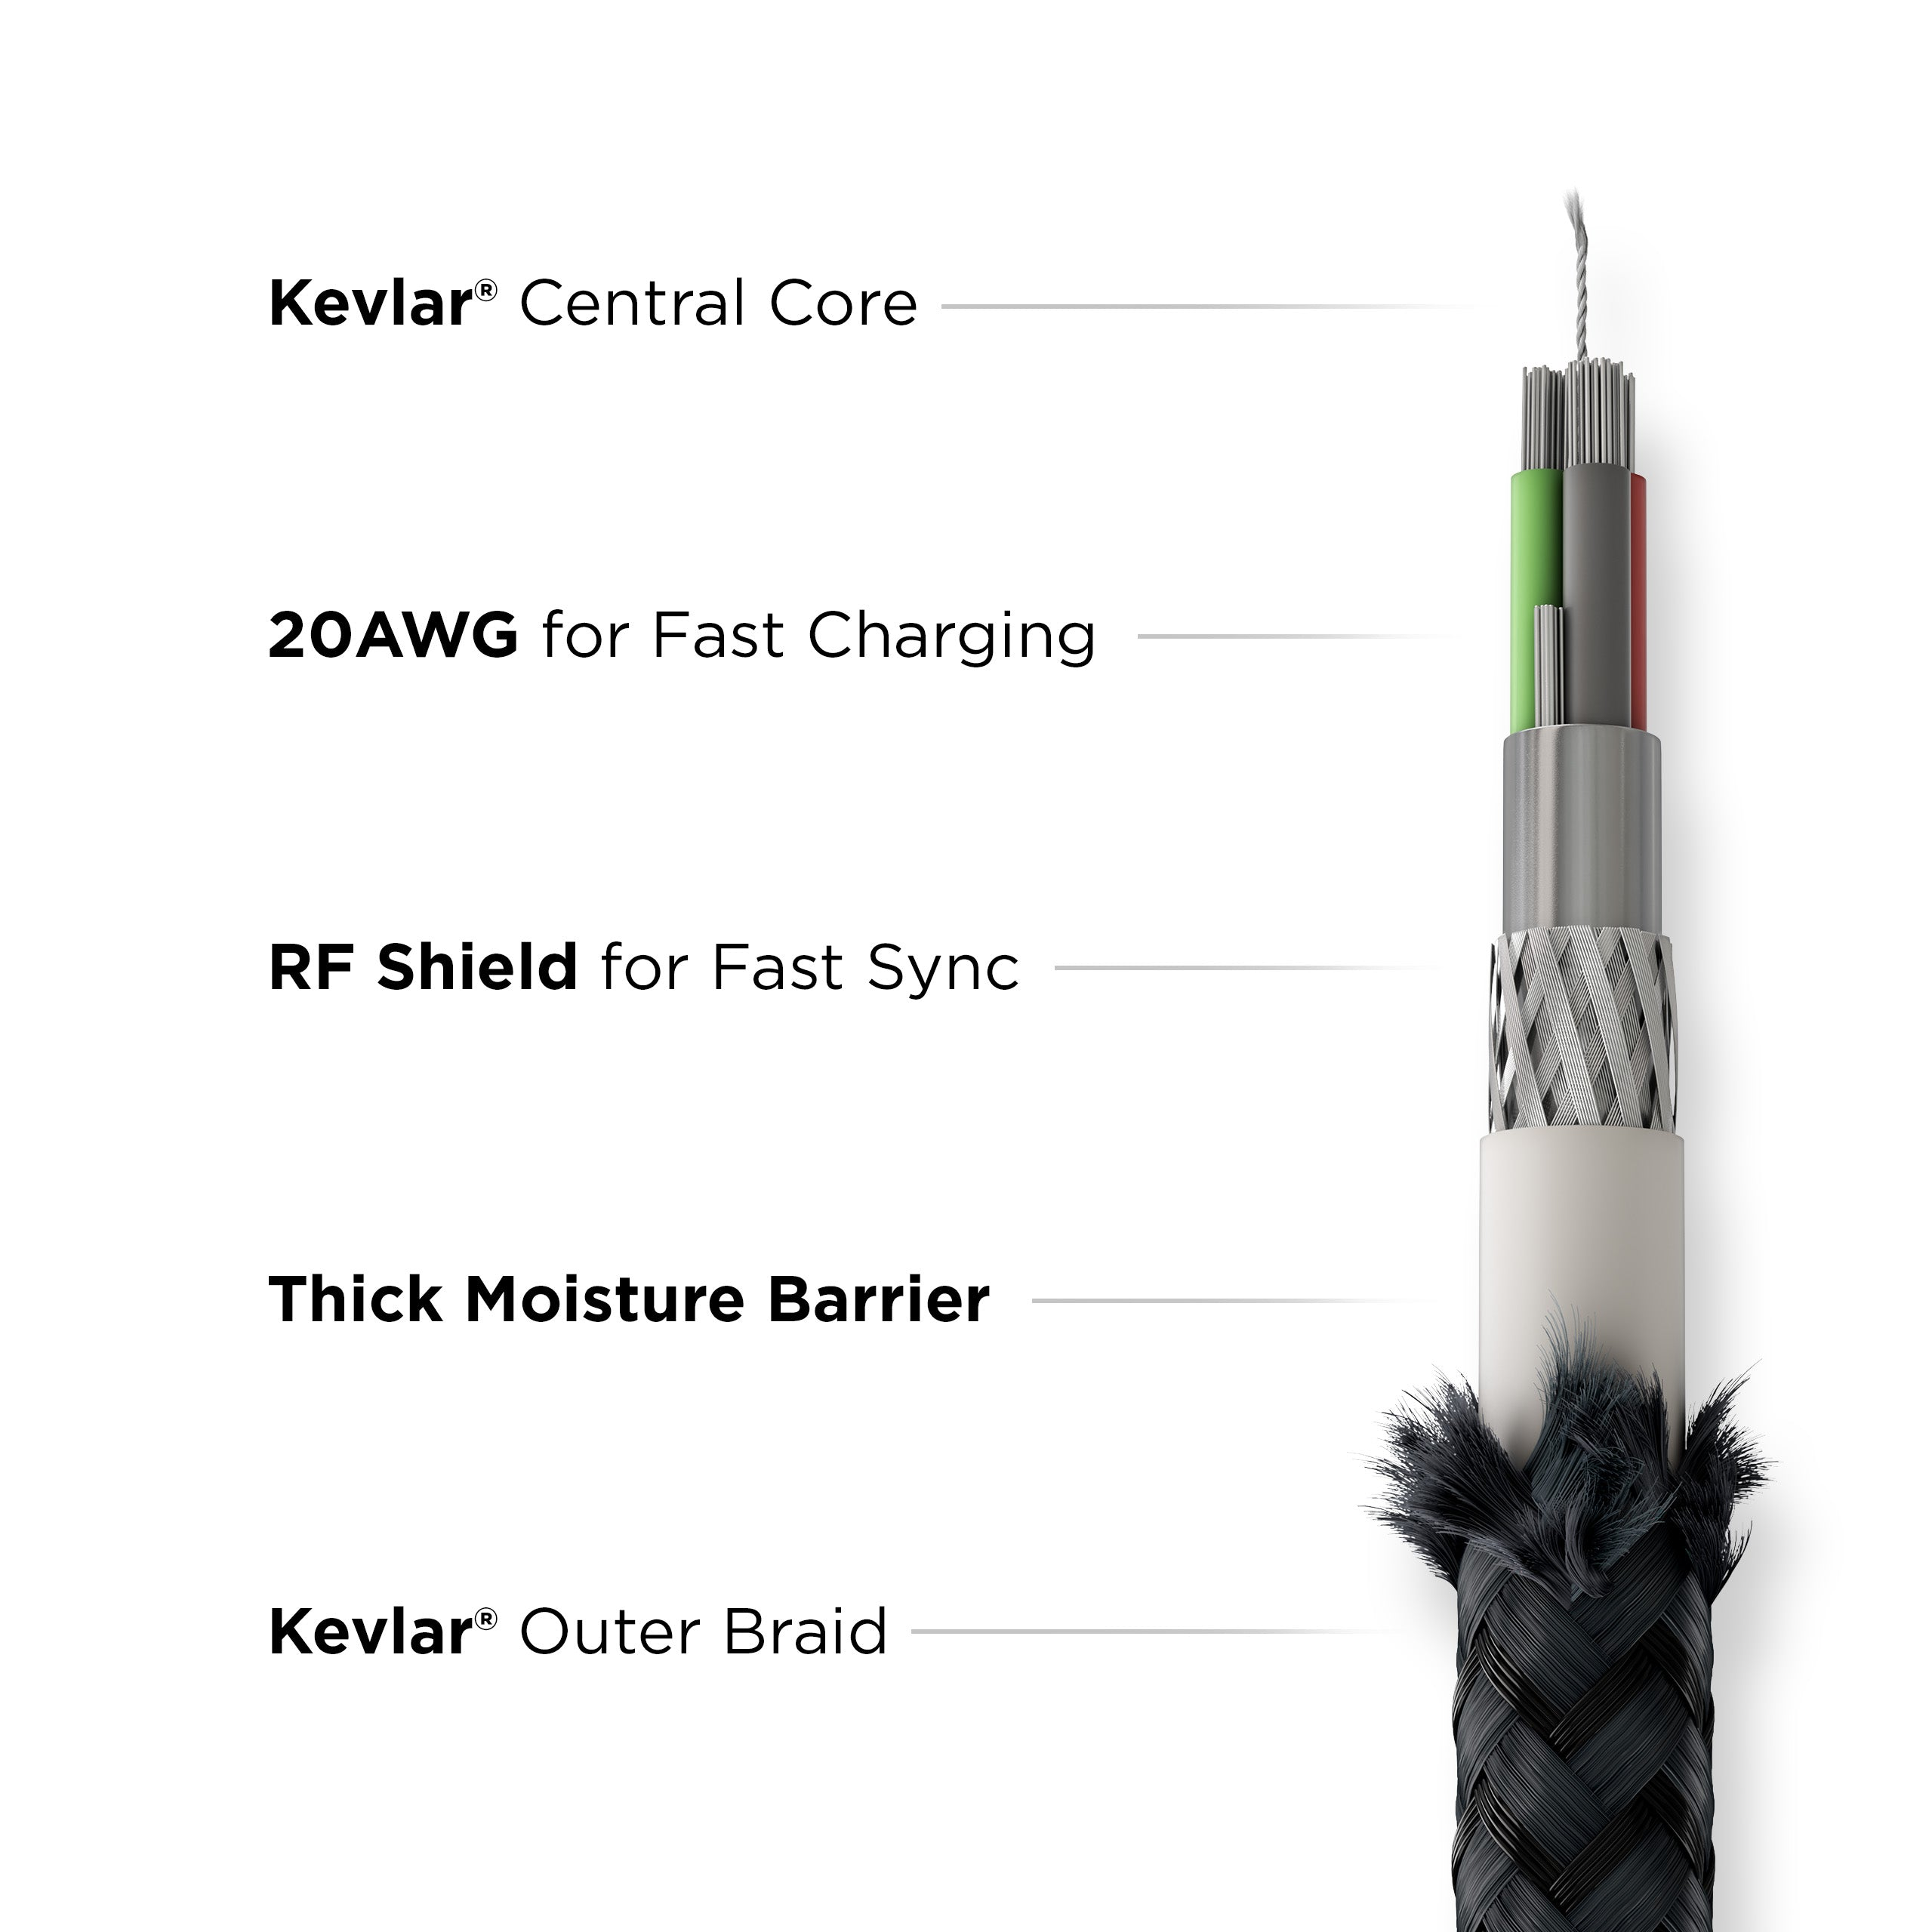 Lightning Cable with Kevlar, 1.5 metres